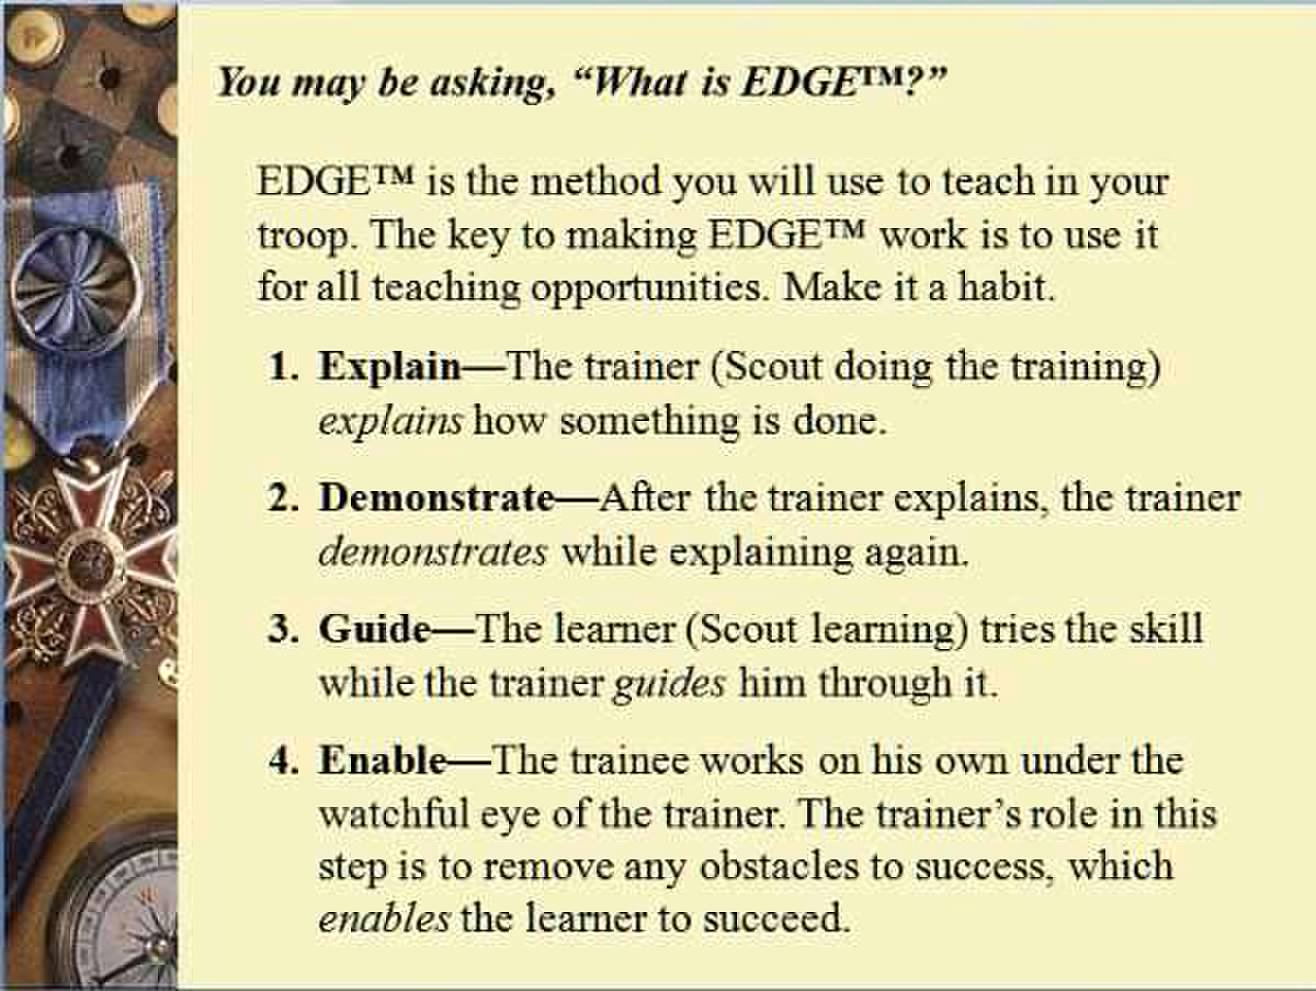 A description of the EDGE method in scouting.